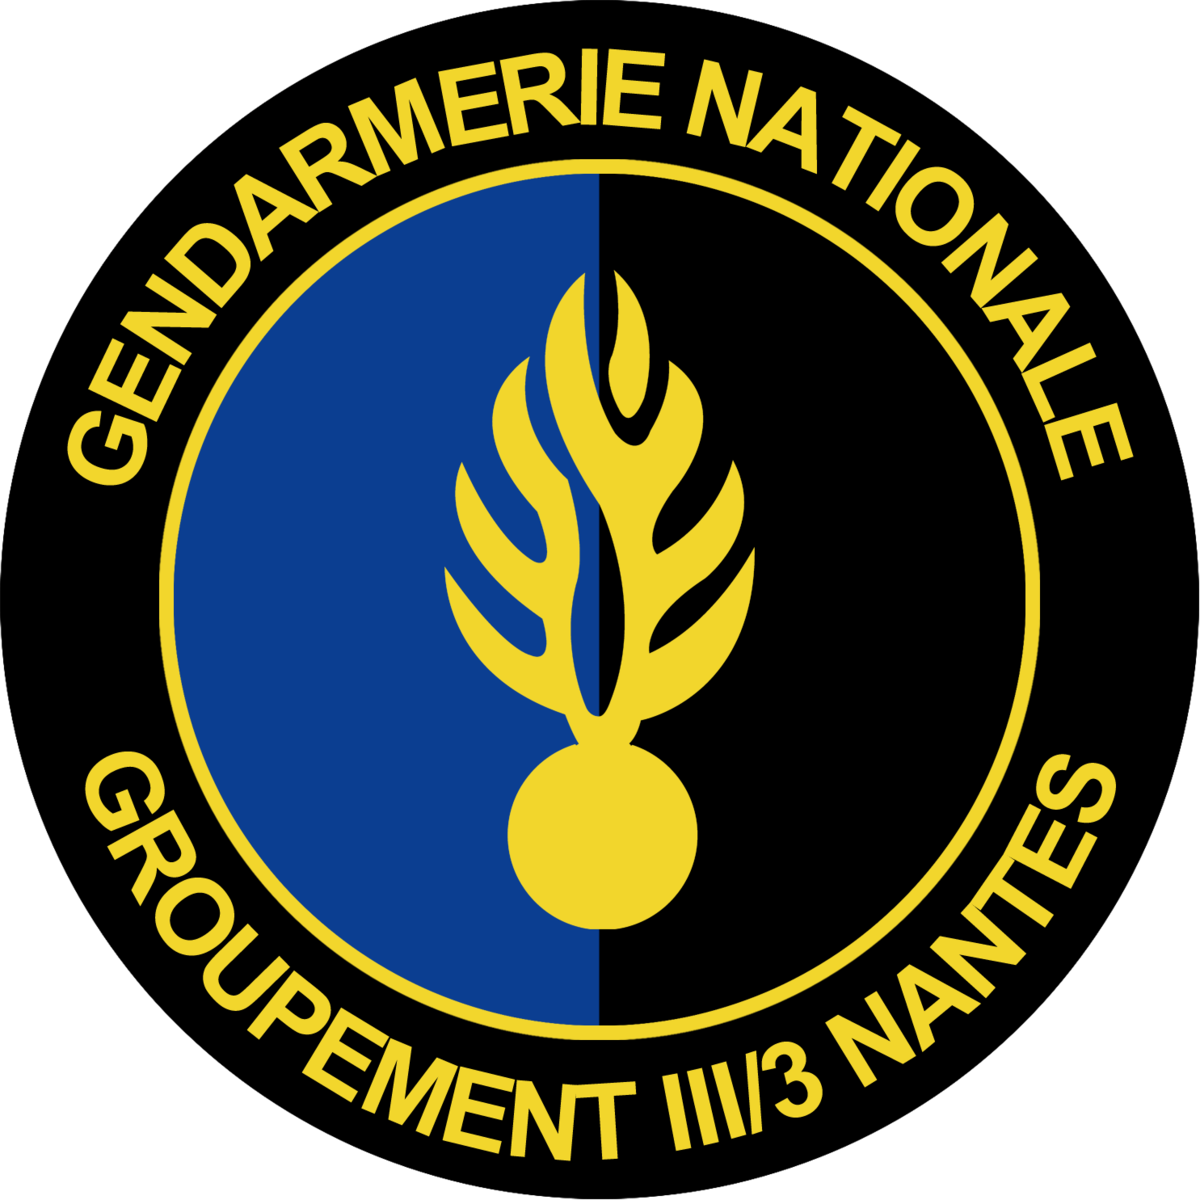 groupement iii 3 de gendarmerie mobile wikip dia. Black Bedroom Furniture Sets. Home Design Ideas